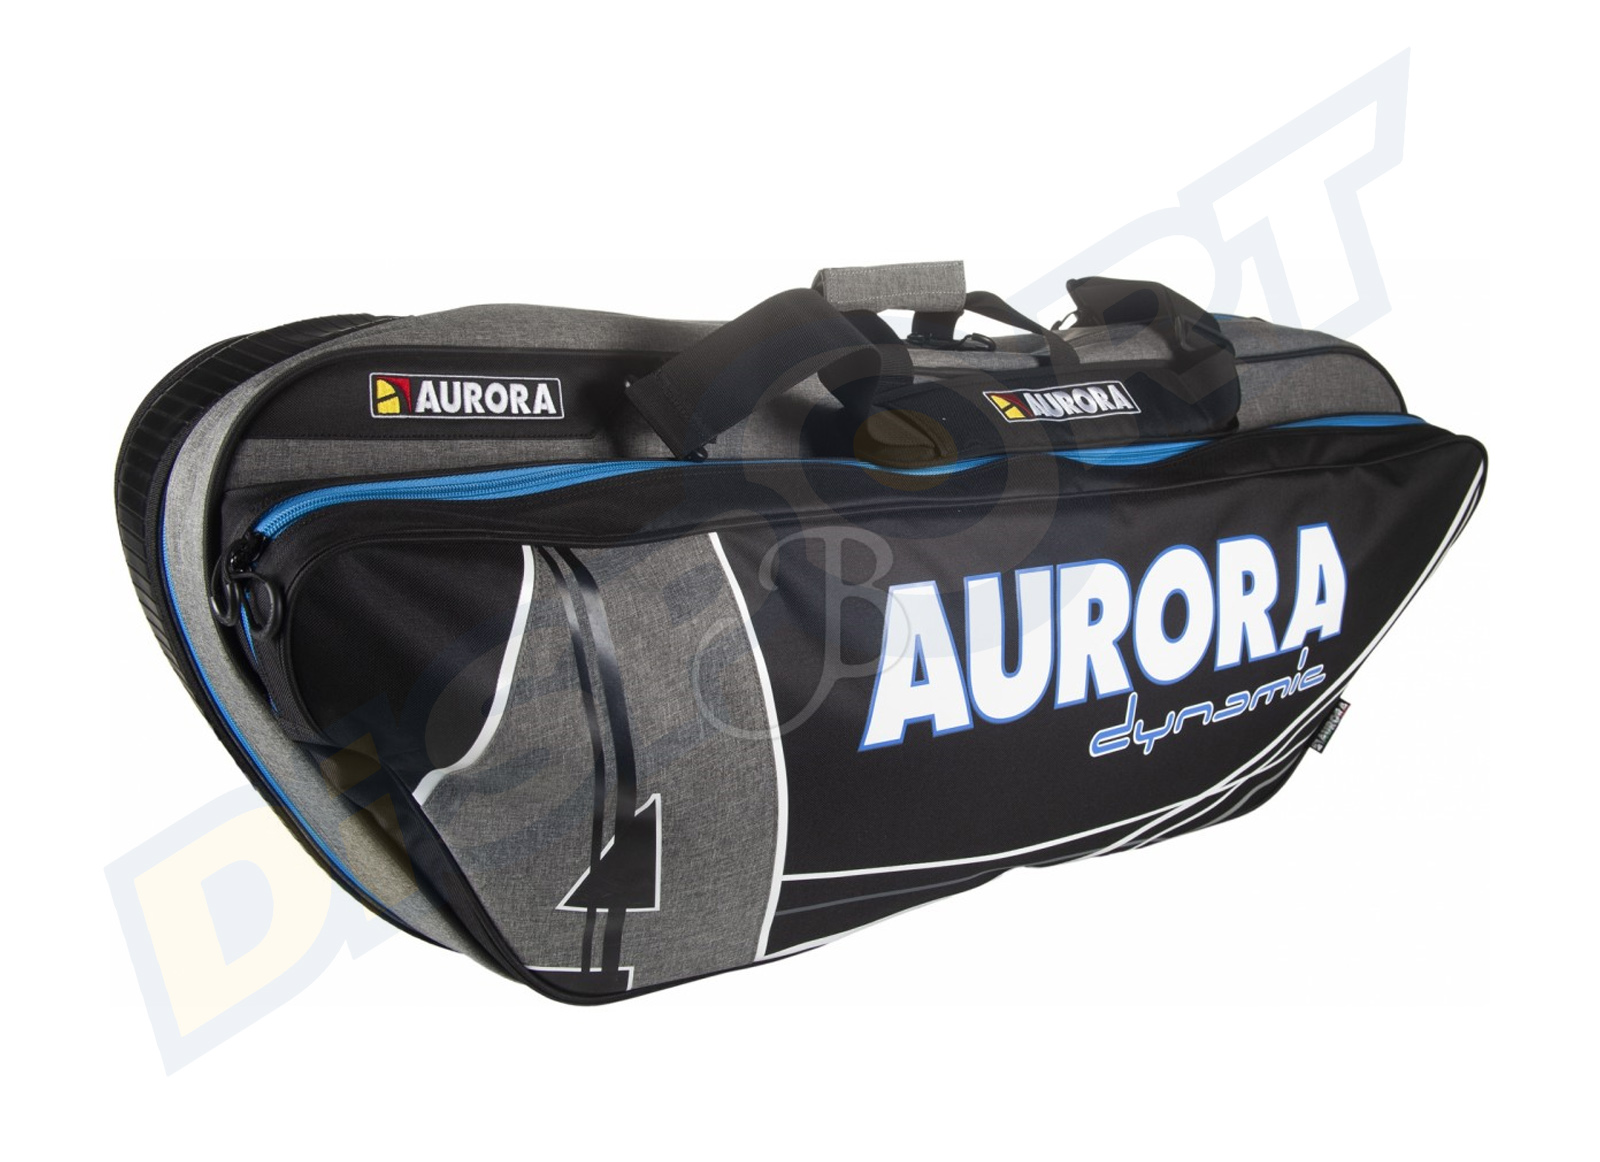 AURORA BORSA COMPOUND DYNAMIC TOP 115